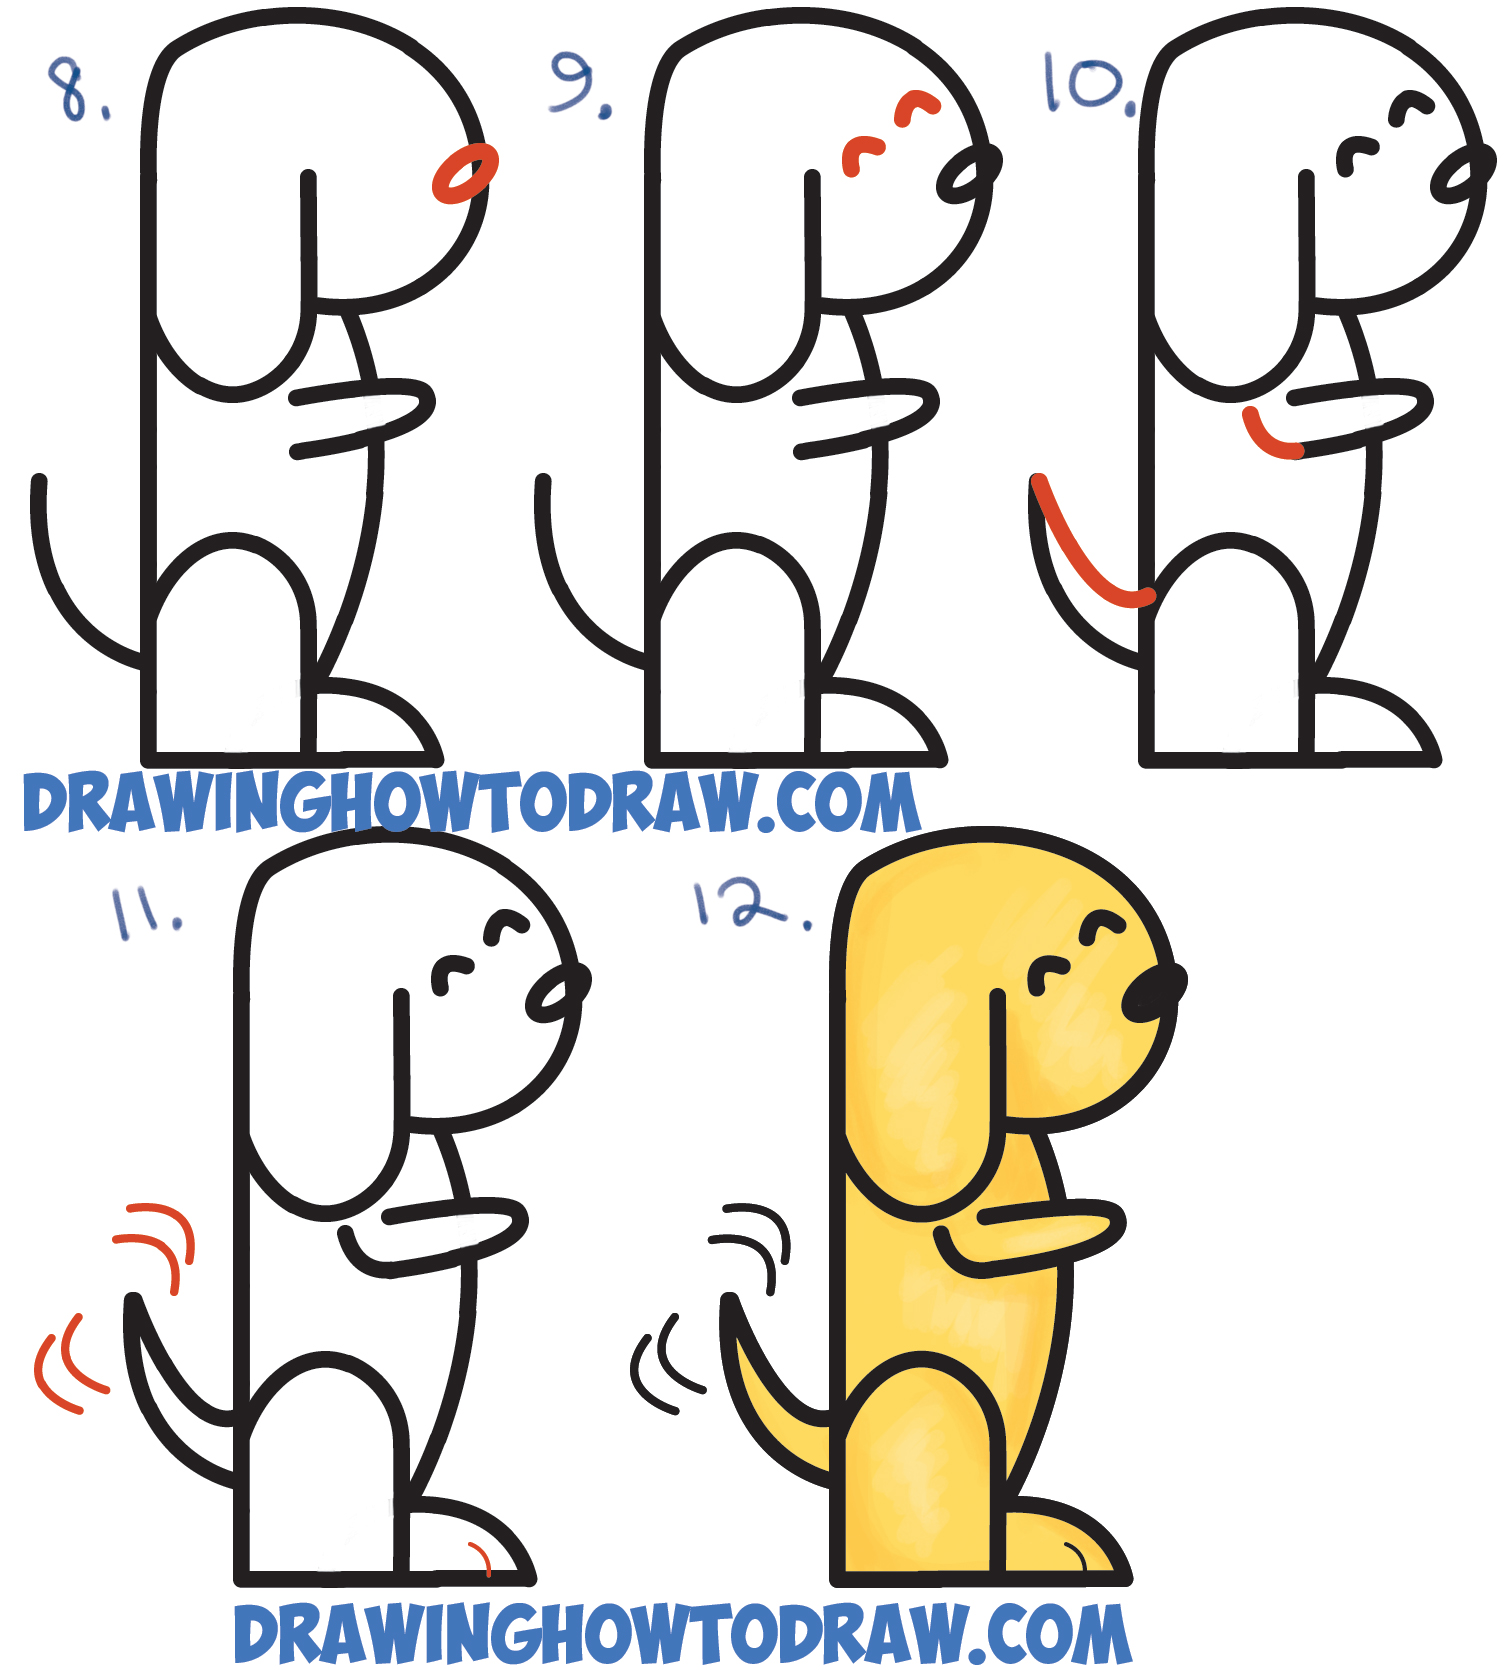 how to draw a cartoon dog begging from 2 letter h shapes